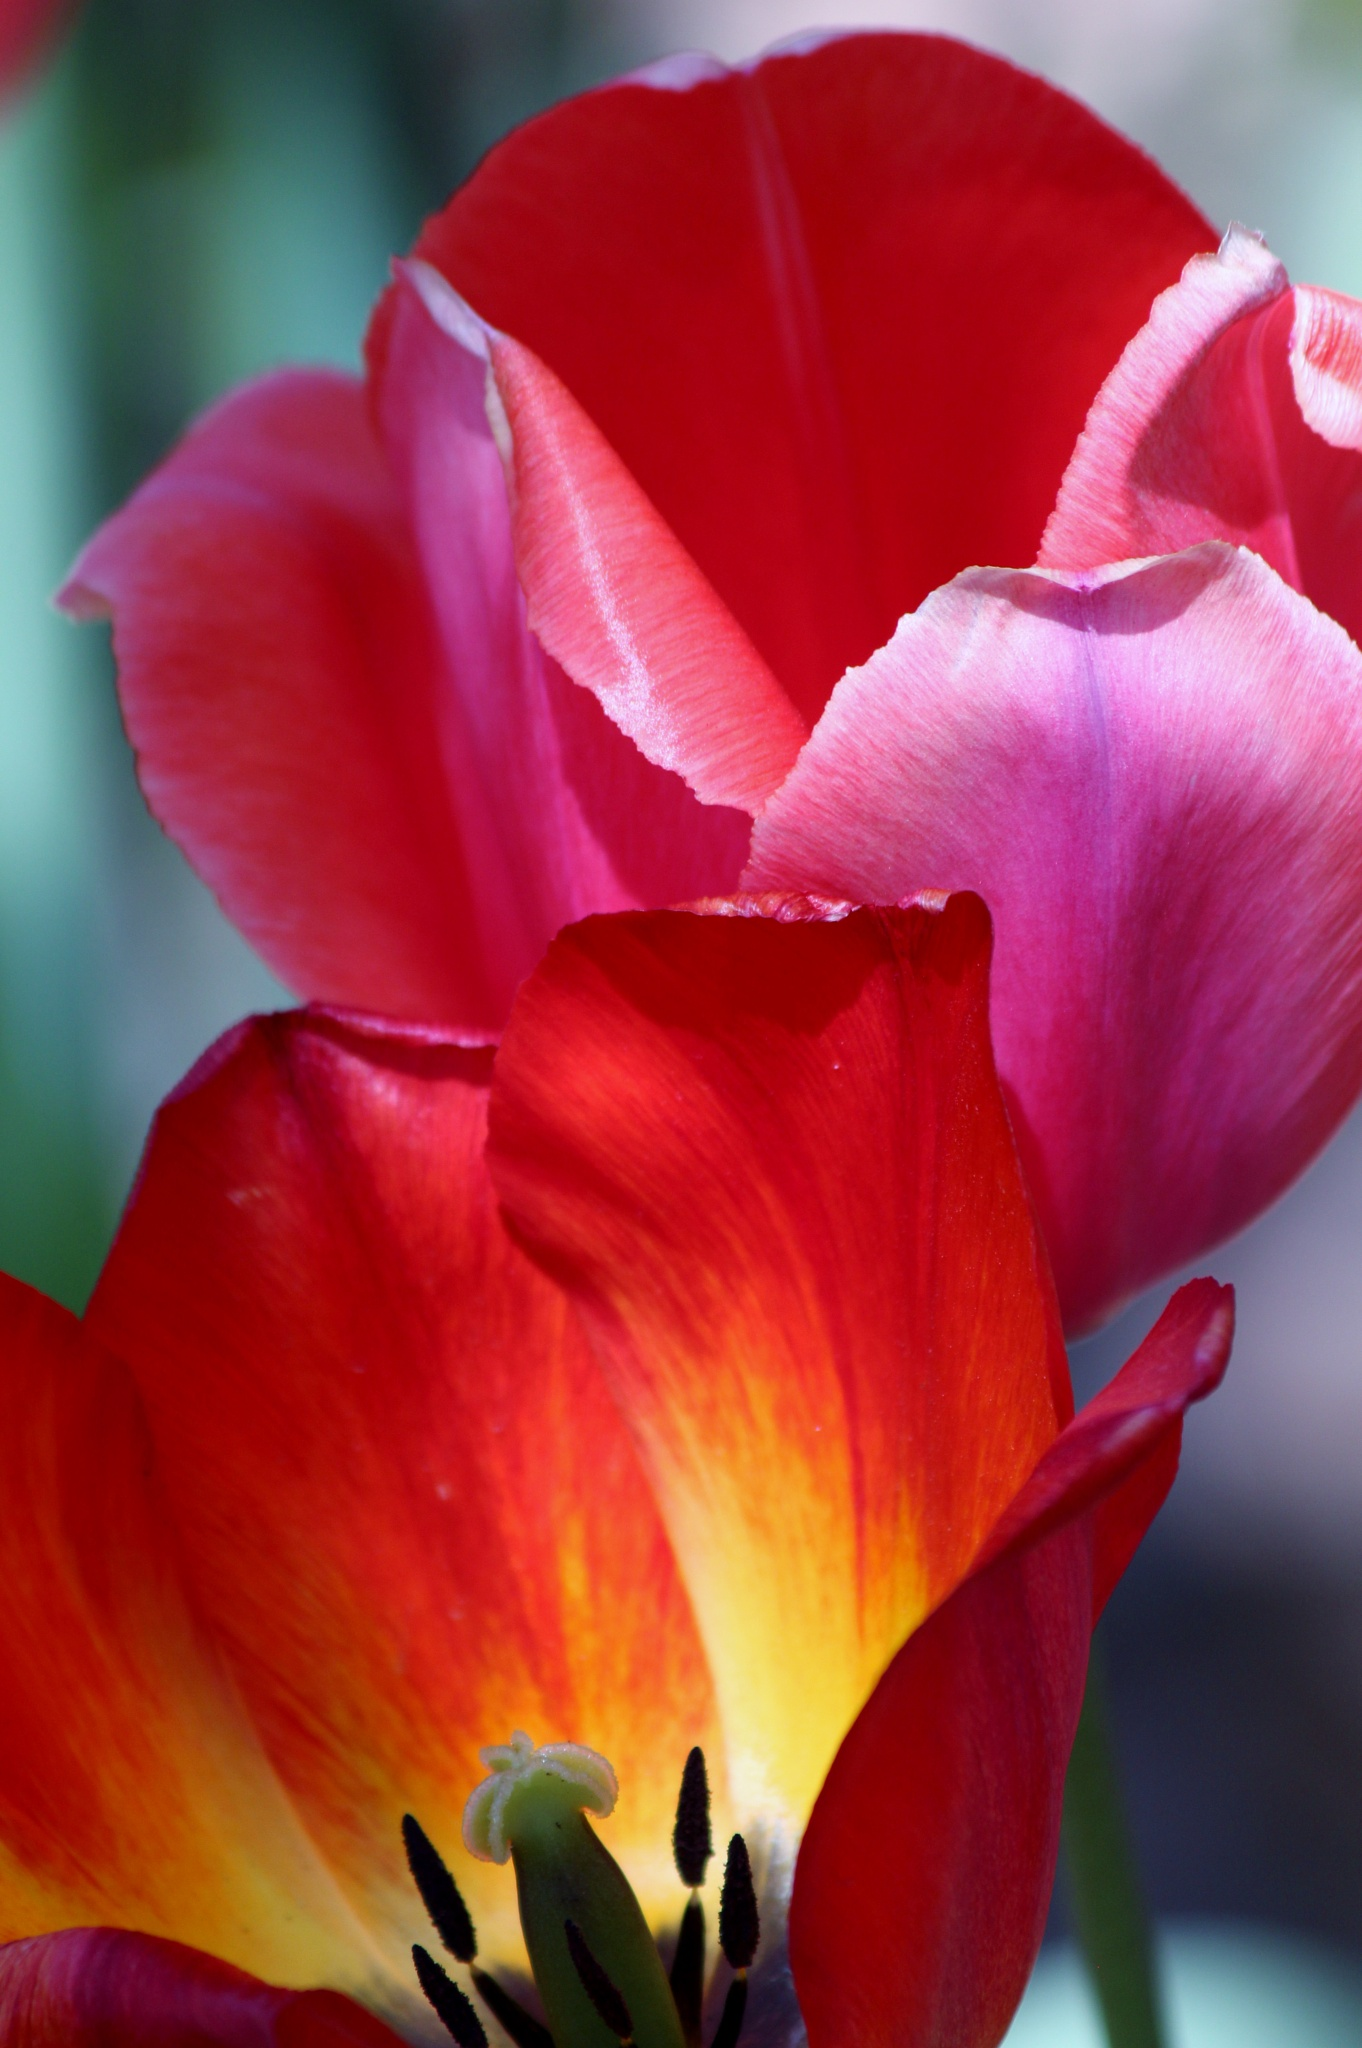 Tulip Opens by Each Frame